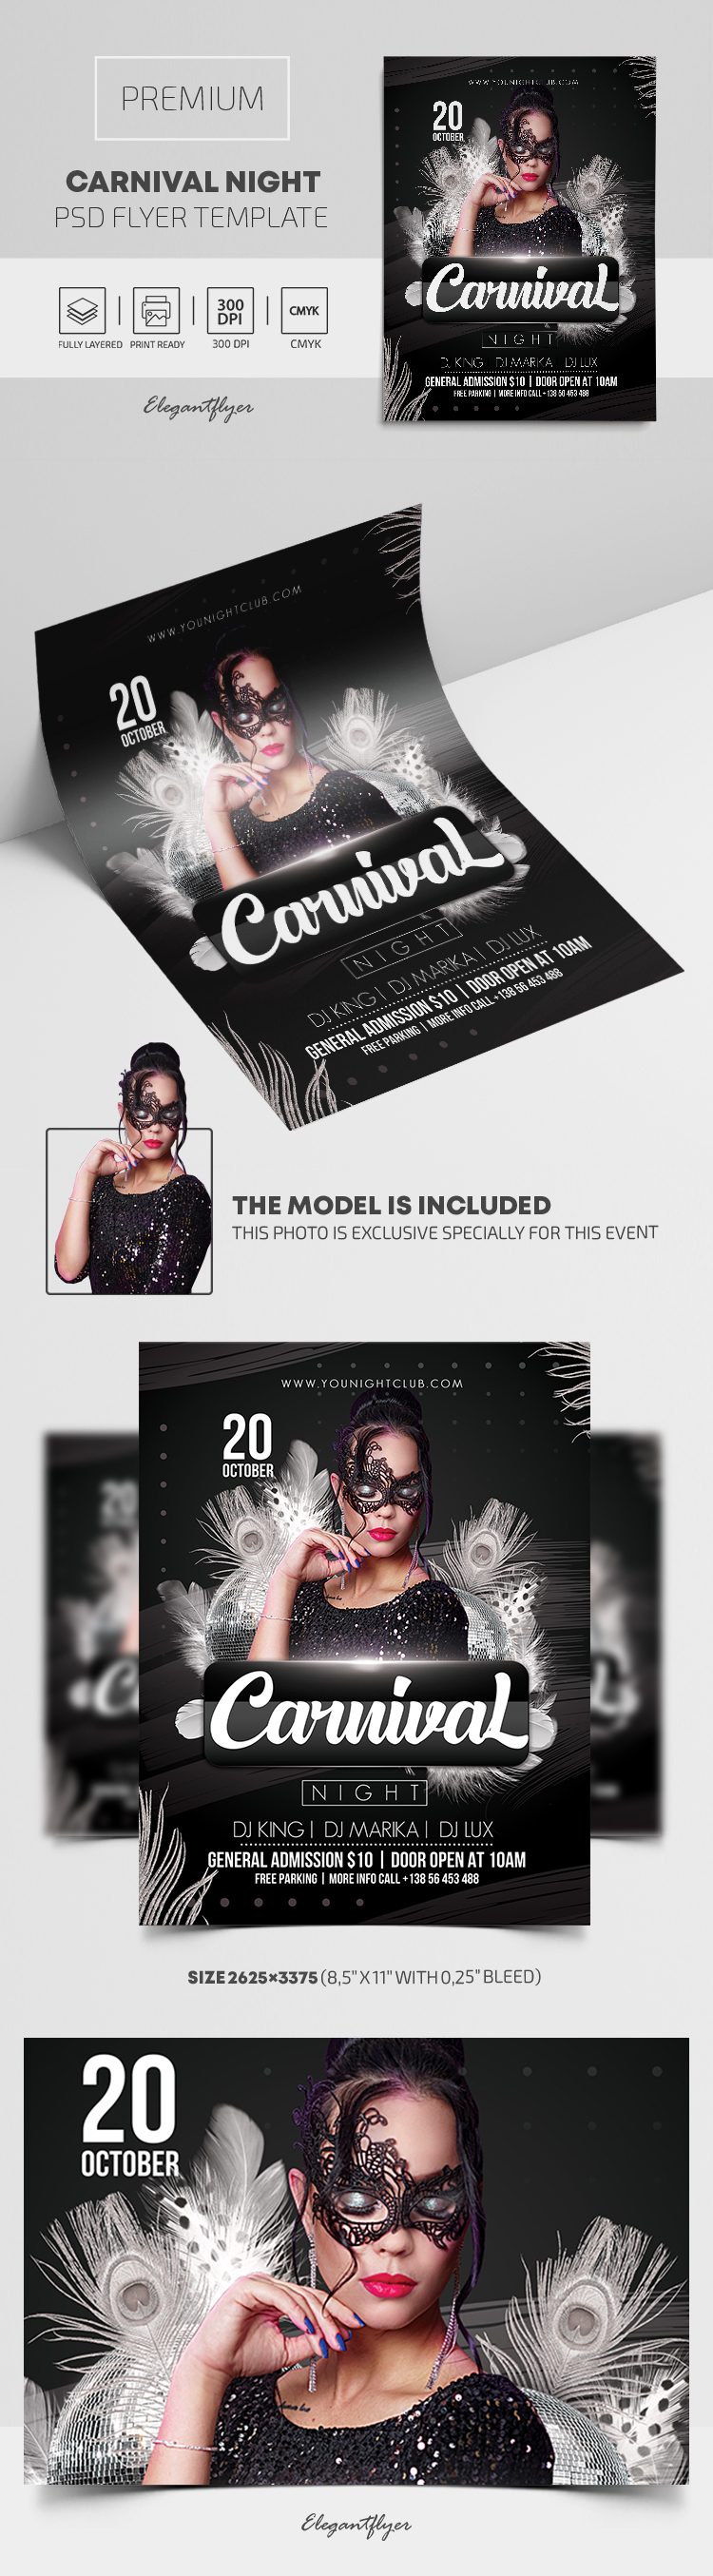 Carnival Night – Premium PSD Flyer Template